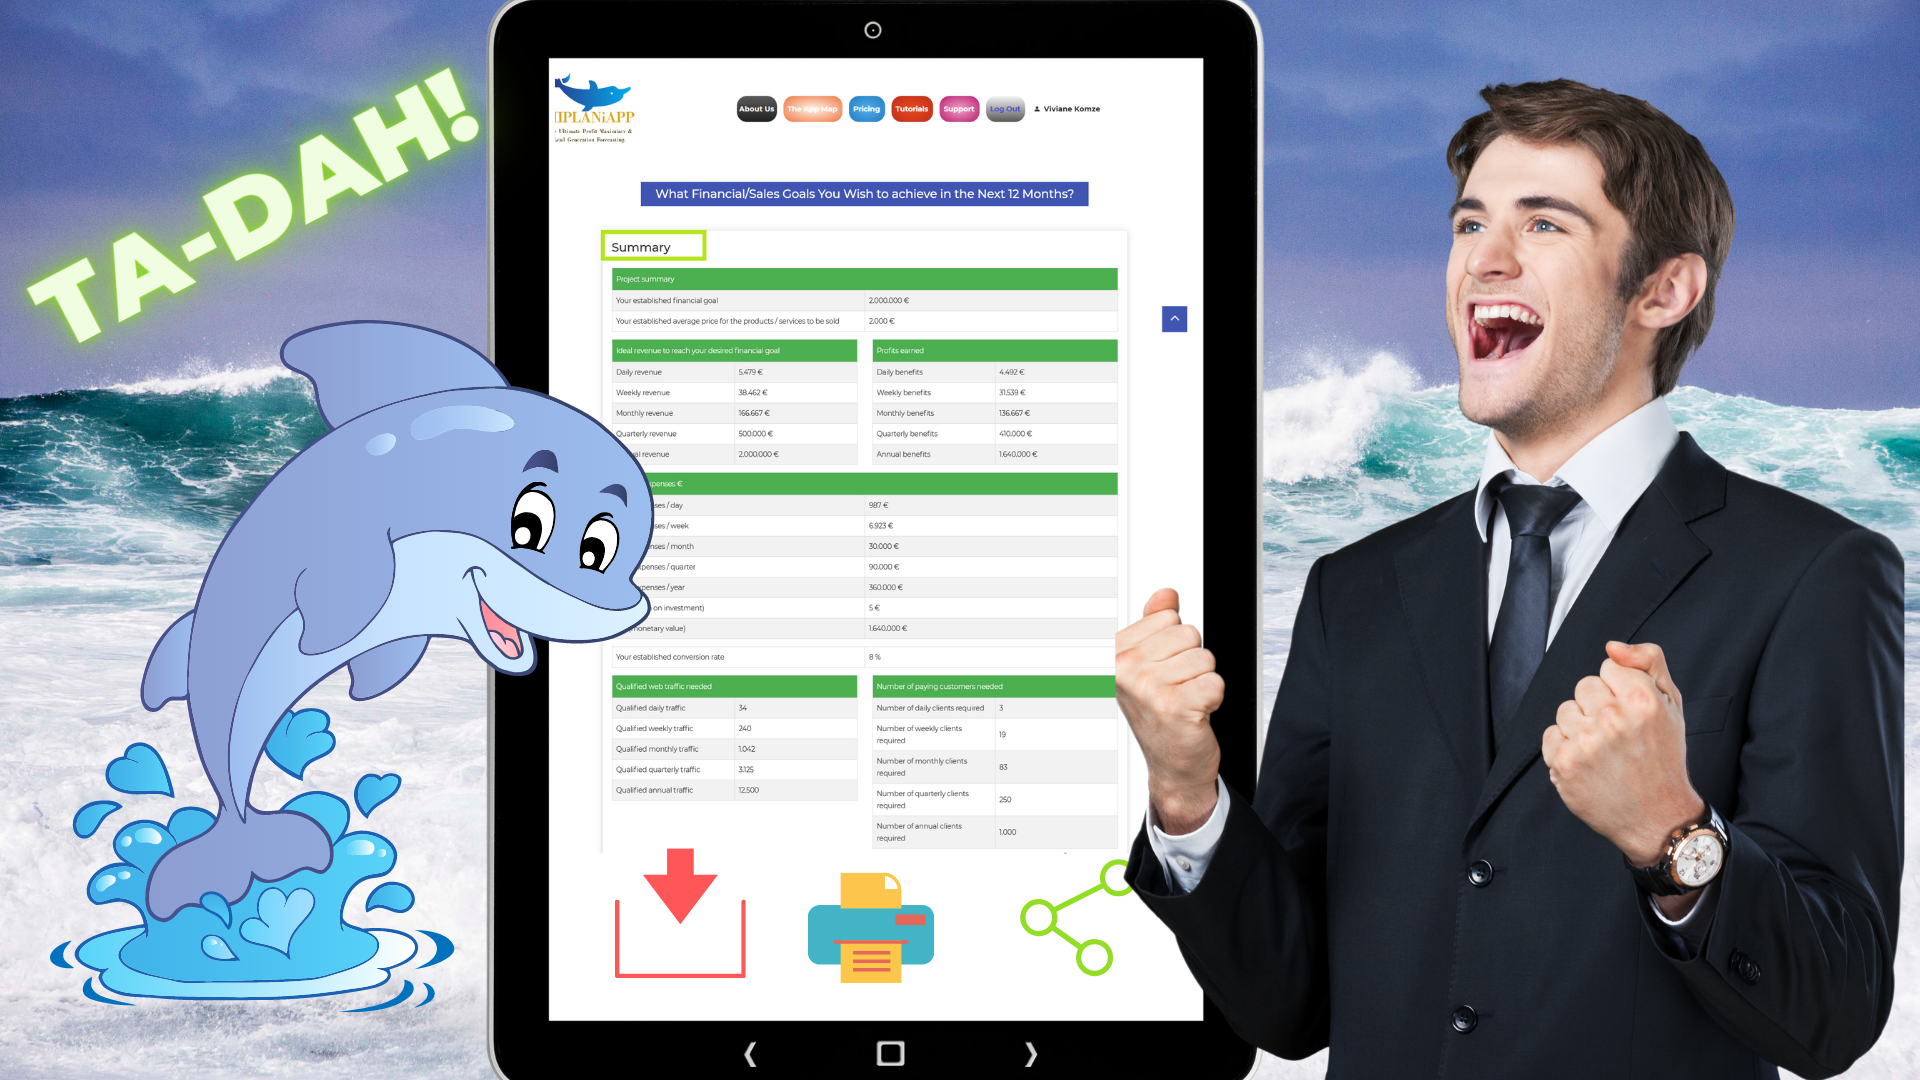 MIPLANiAPP® is the software you are going to need to achieve all your business goals.